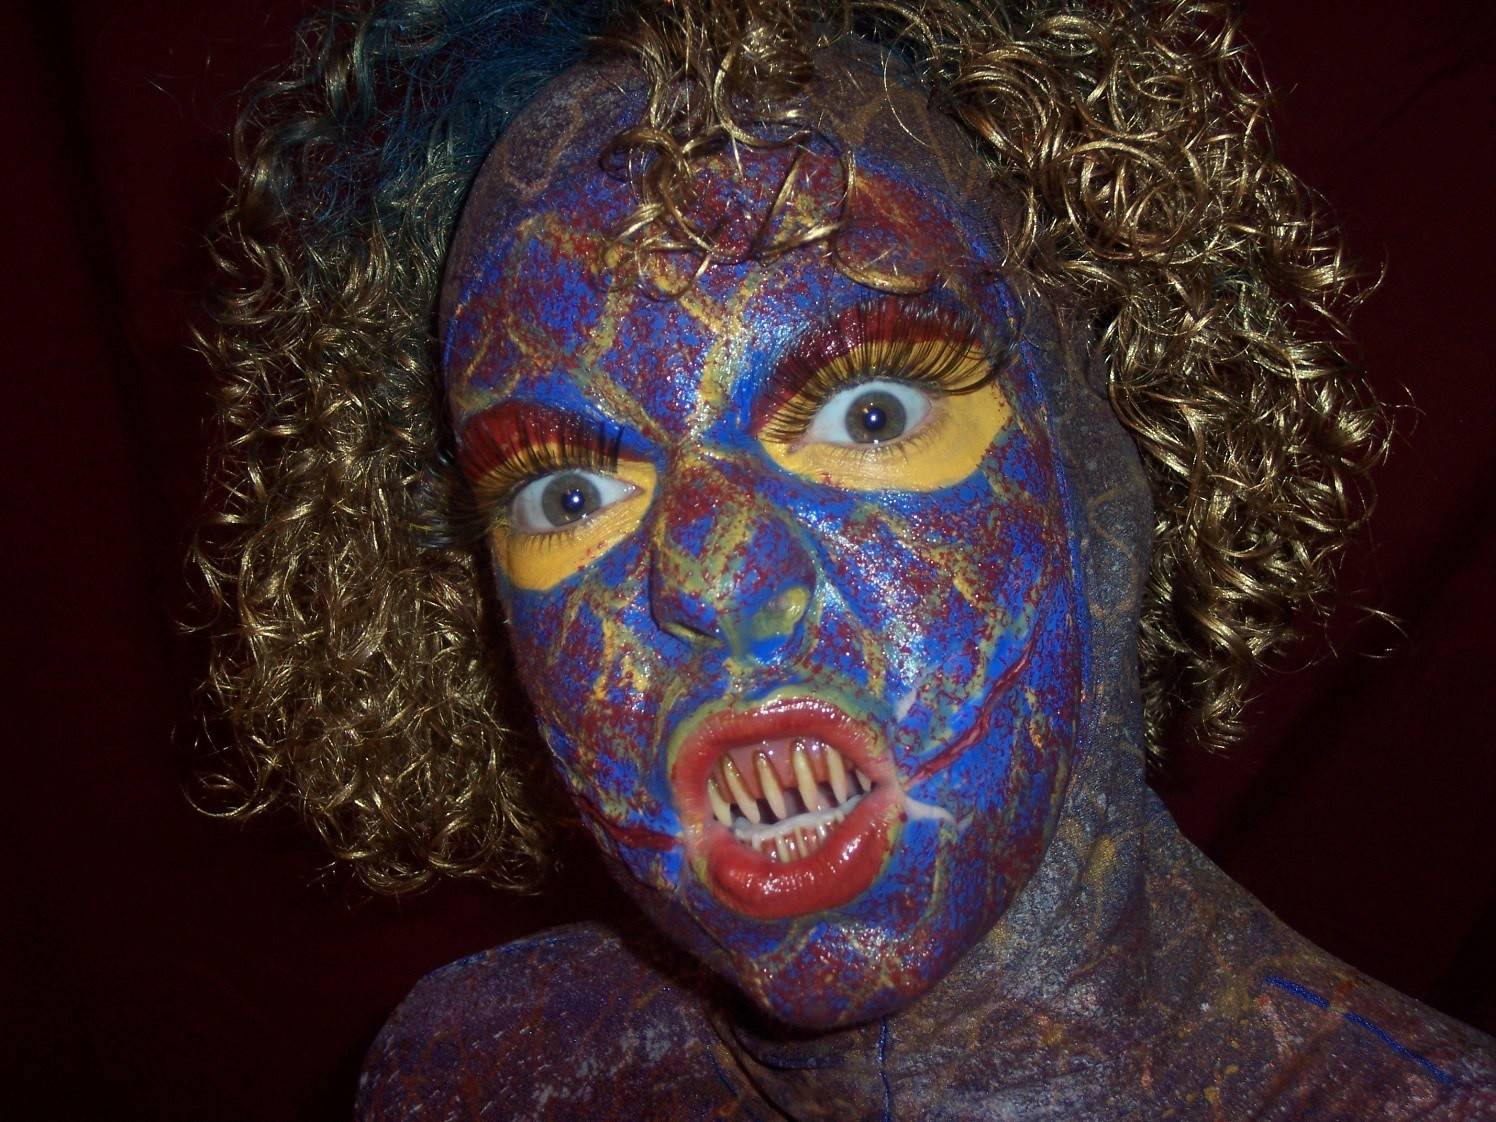 Colleen Miller, a Naperville native, models her horror effects makeup.